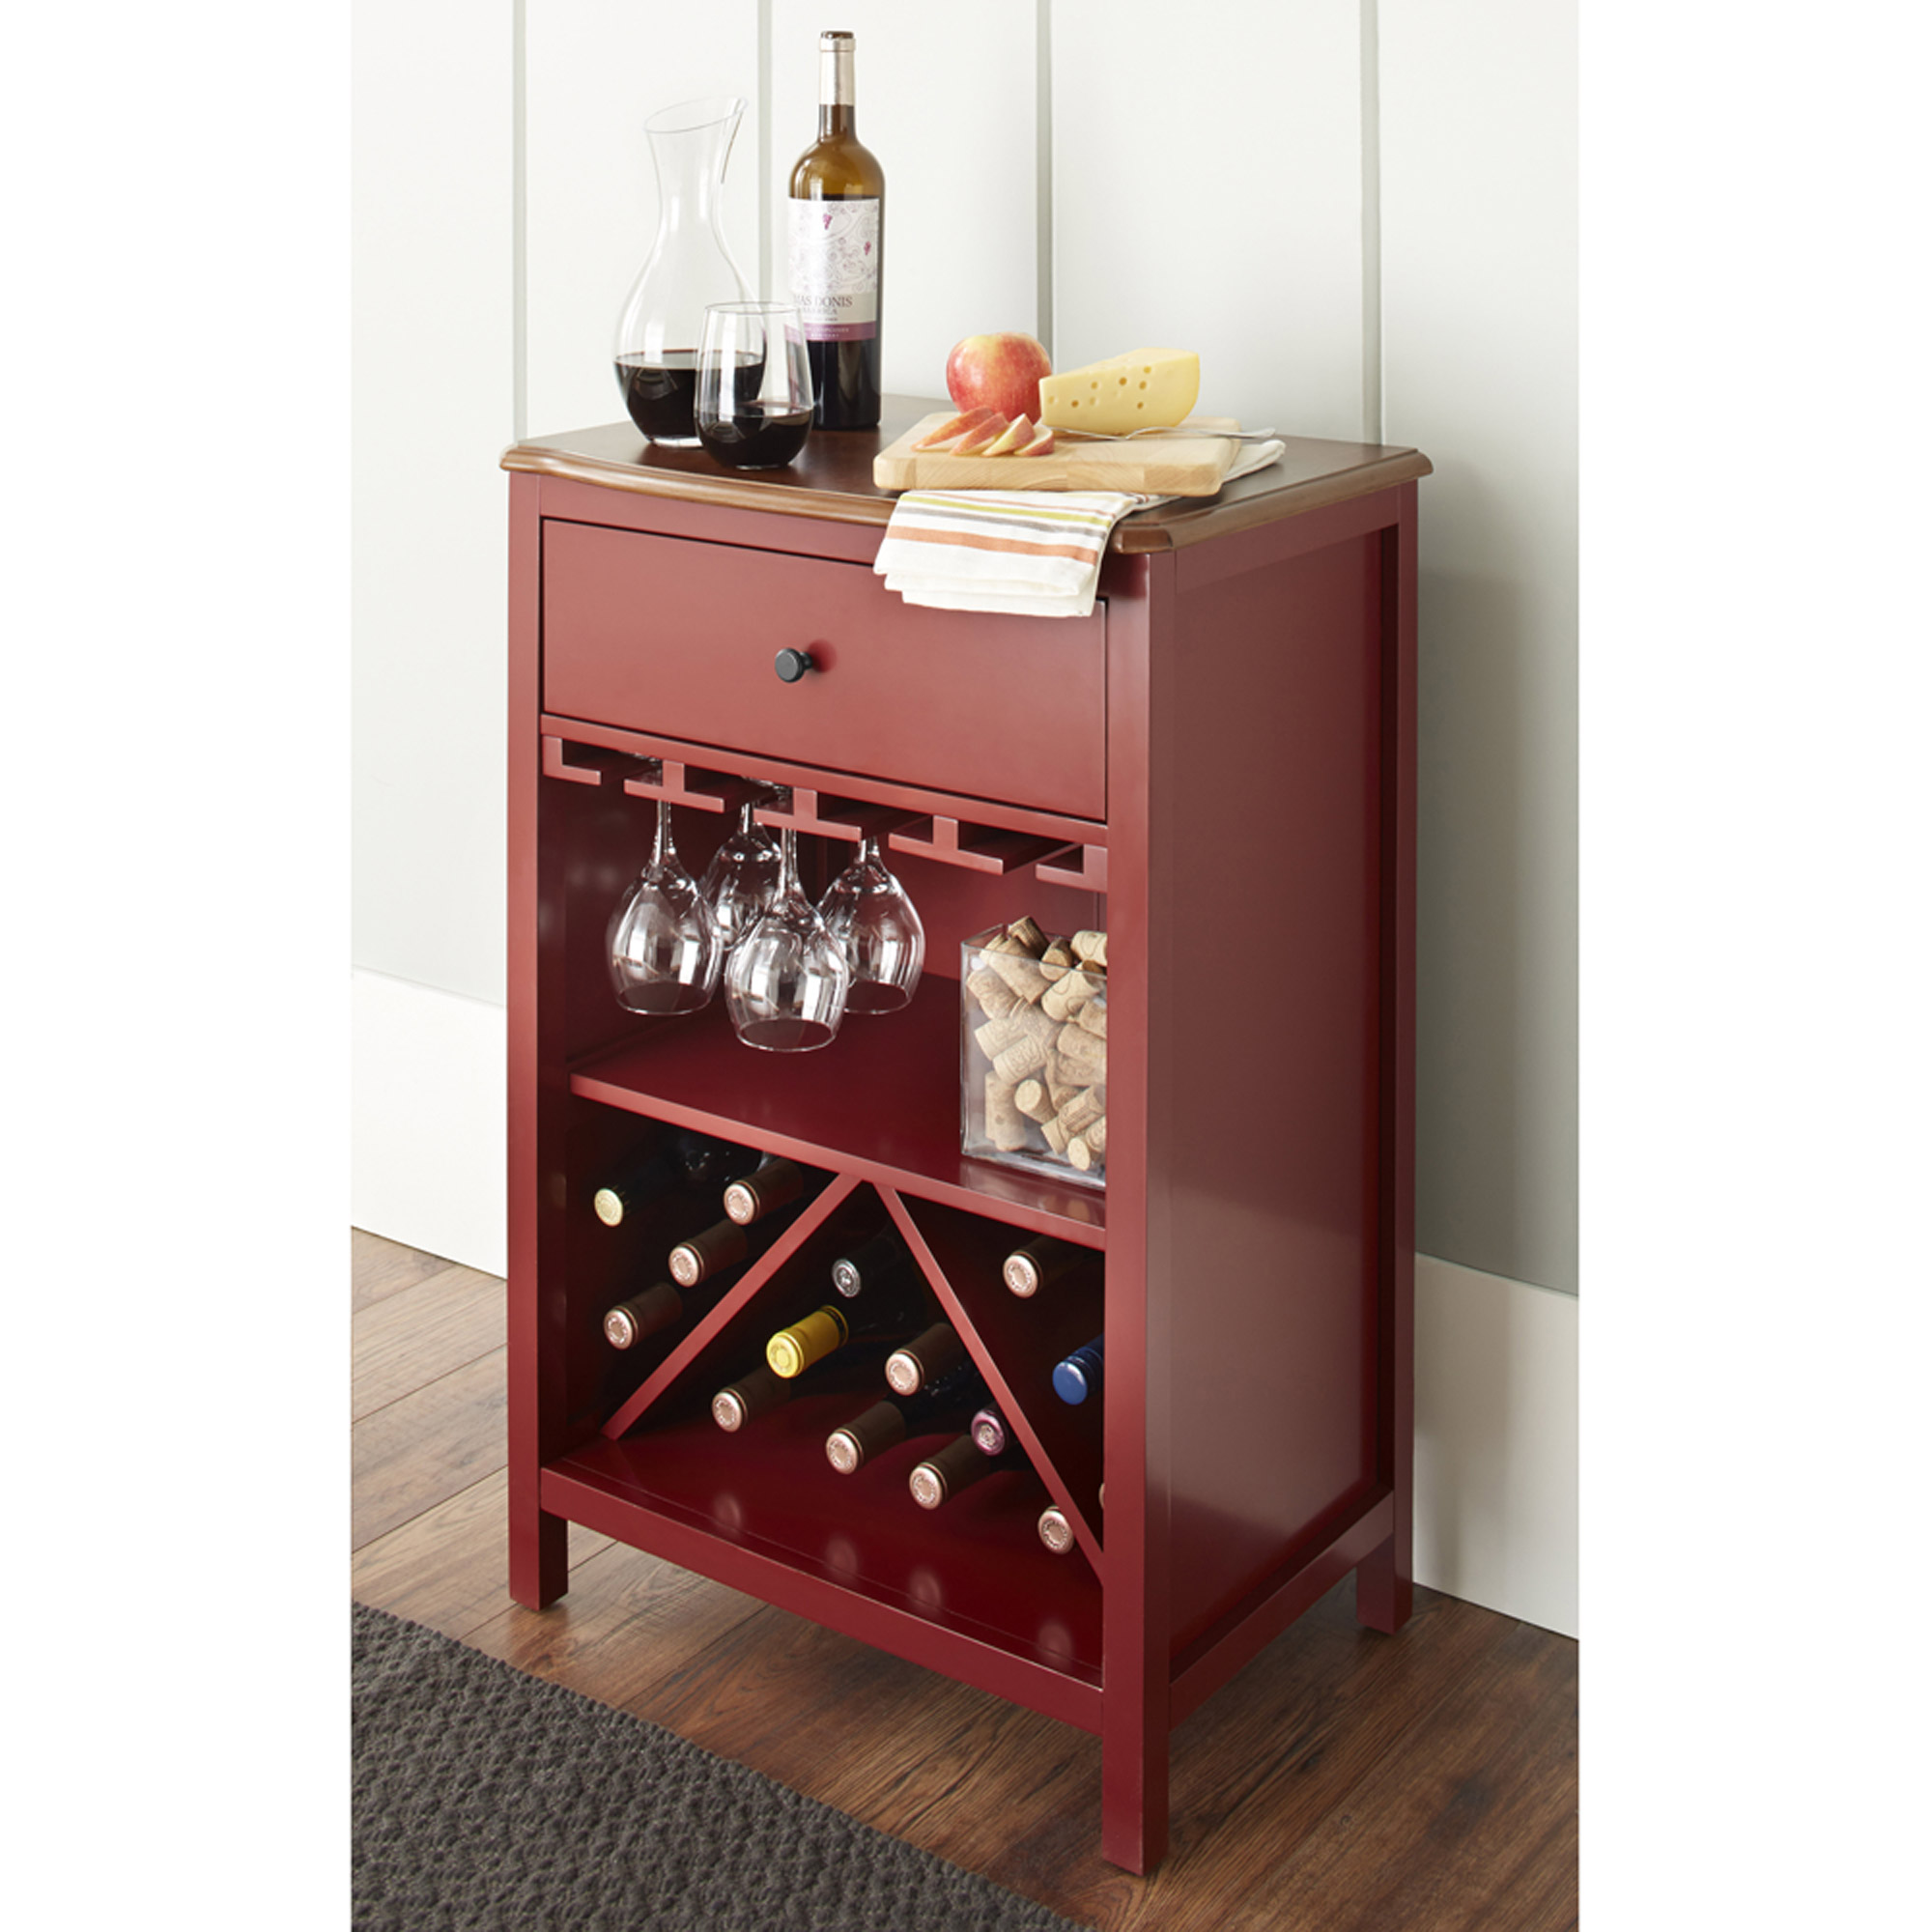 with cupboard legs storage wineracks contemporary drawer wine shop wooden bottle cabinet rack